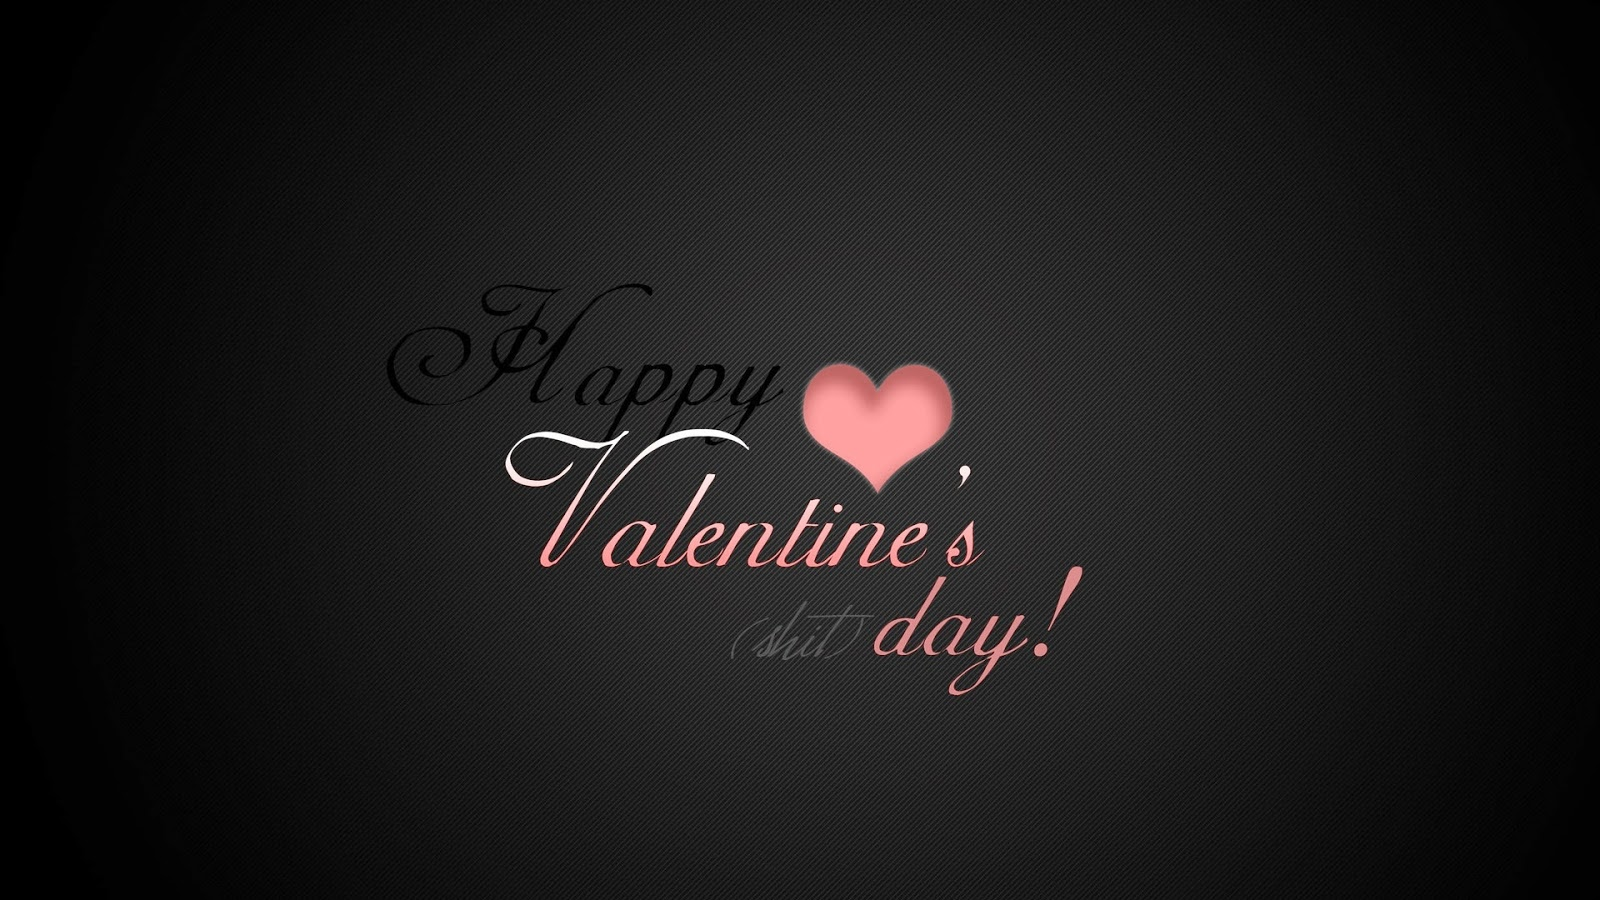 Happy-Valentine's-day-with-heart-Black-background-picture-desktop.jpg